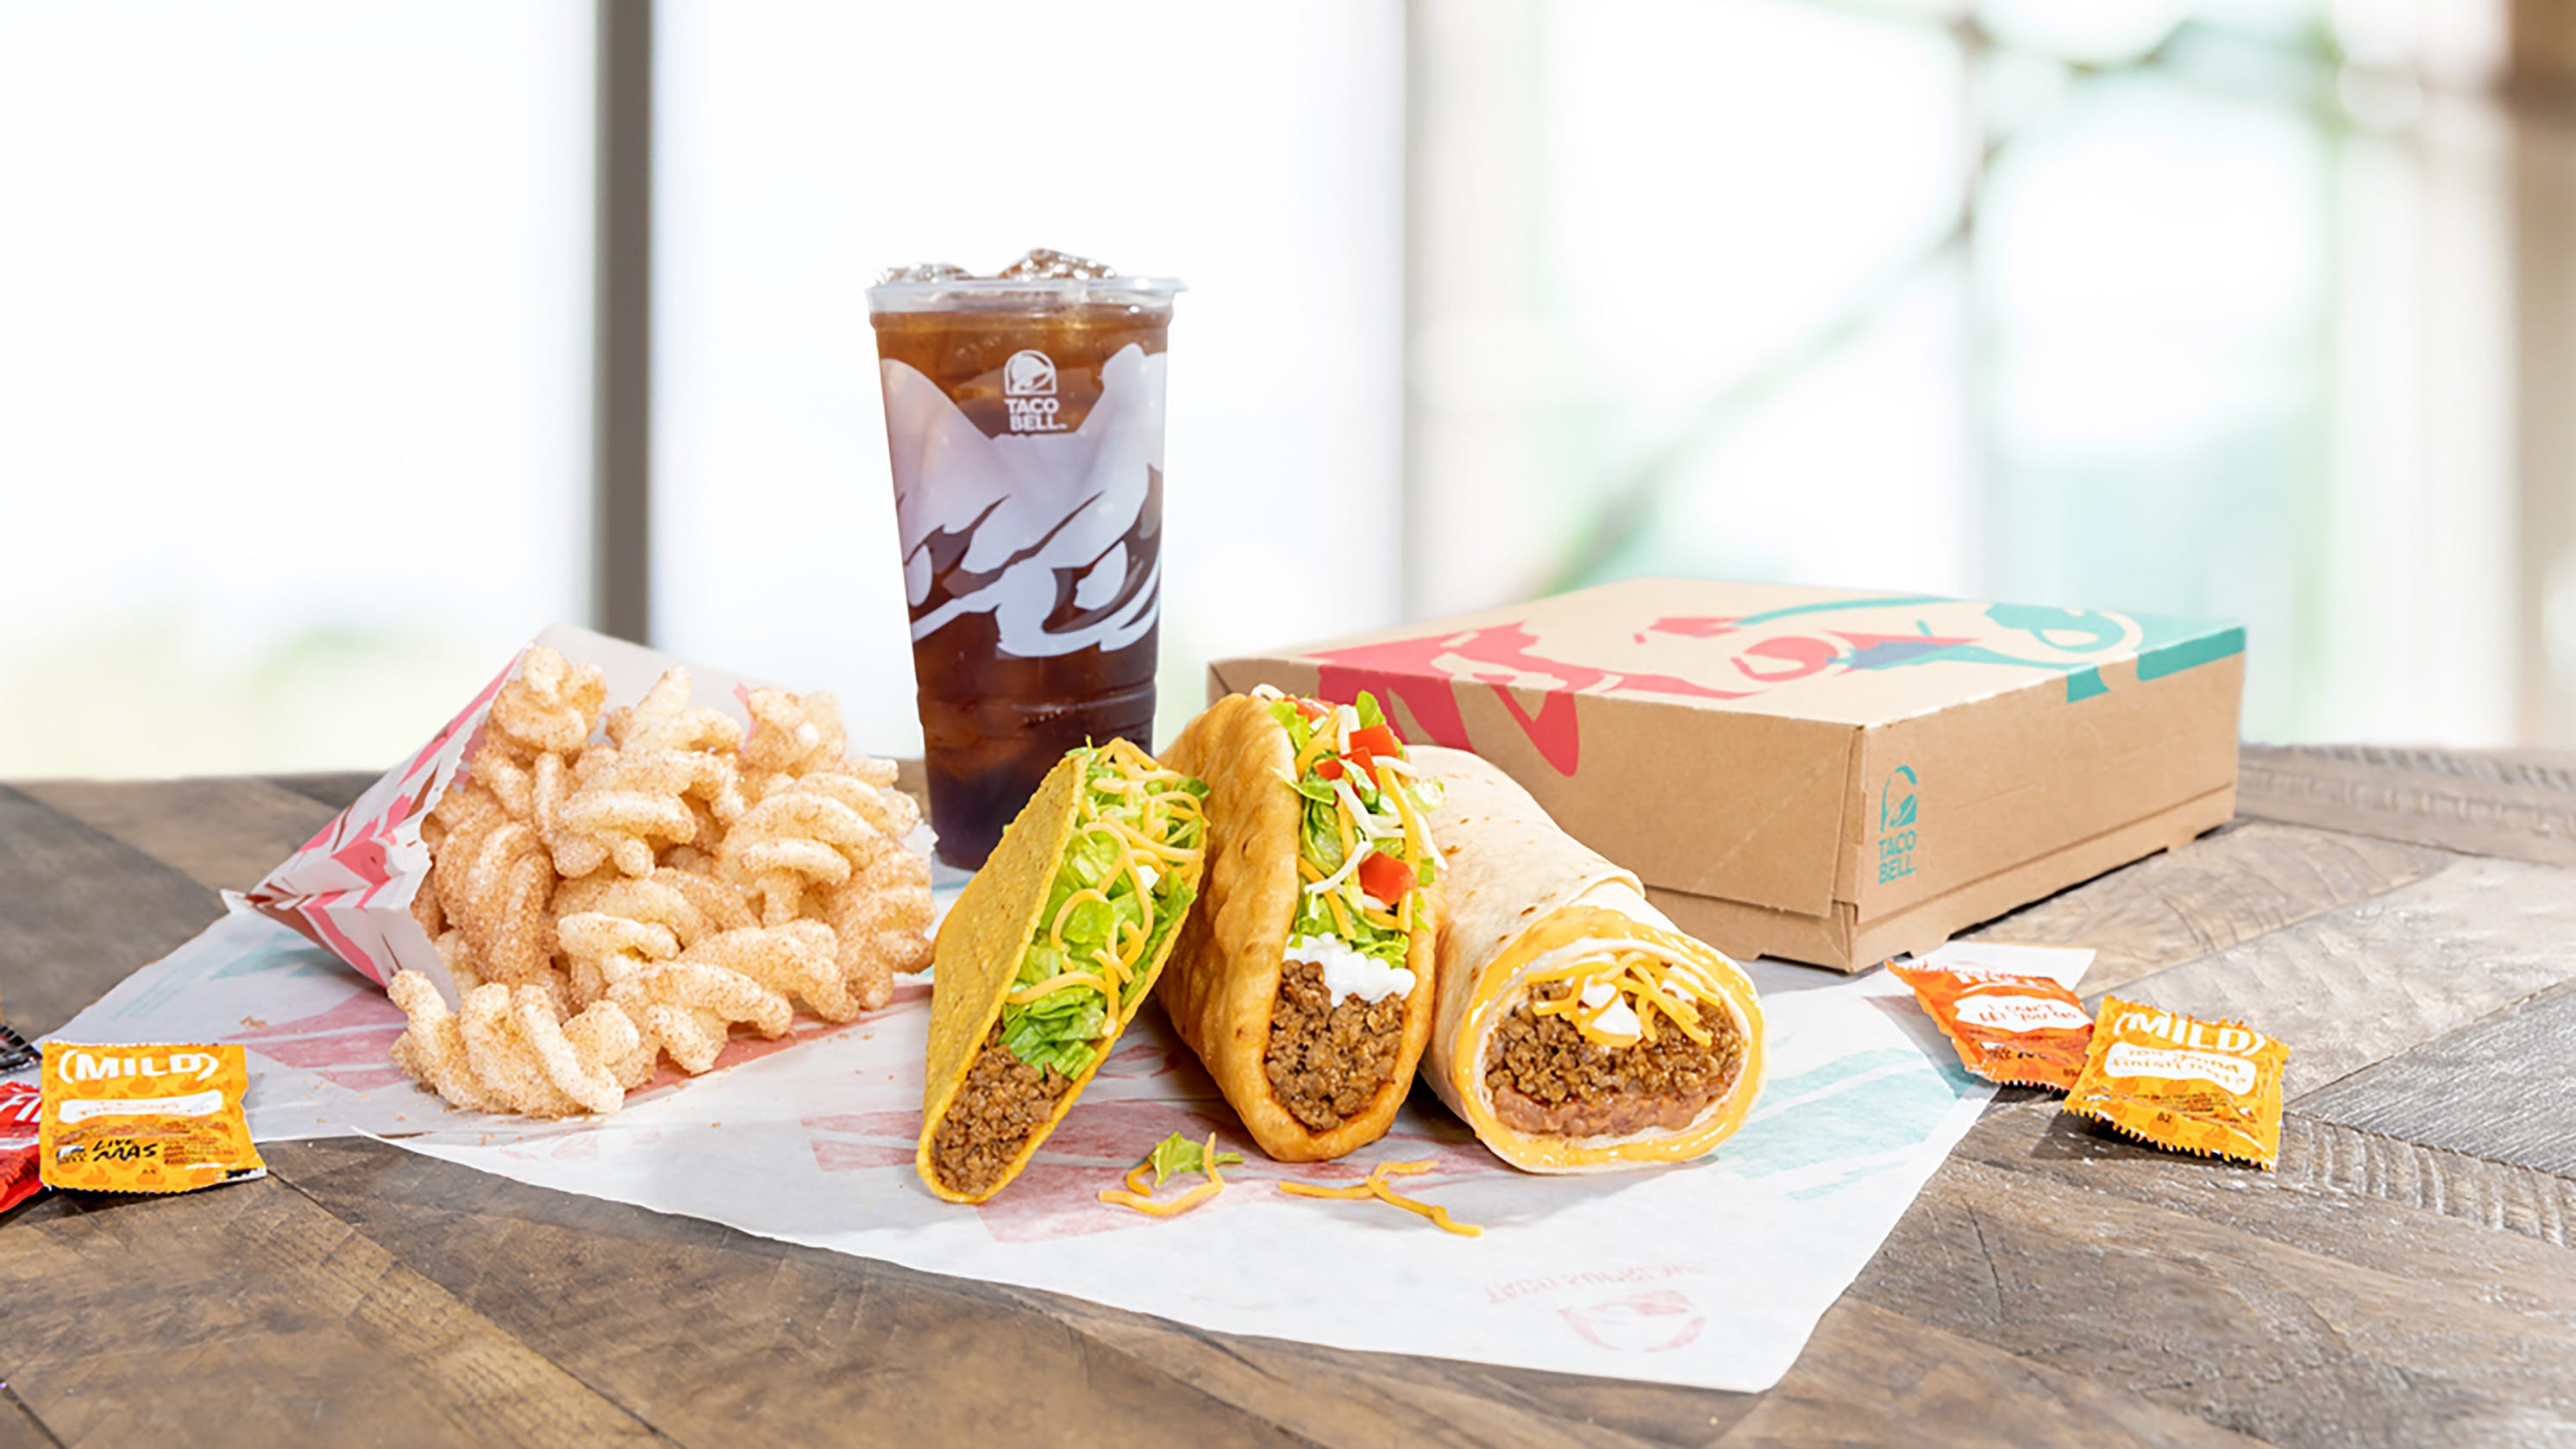 Taco Bell offers free Chalupa Cravings Box through the app, but users face tech issues